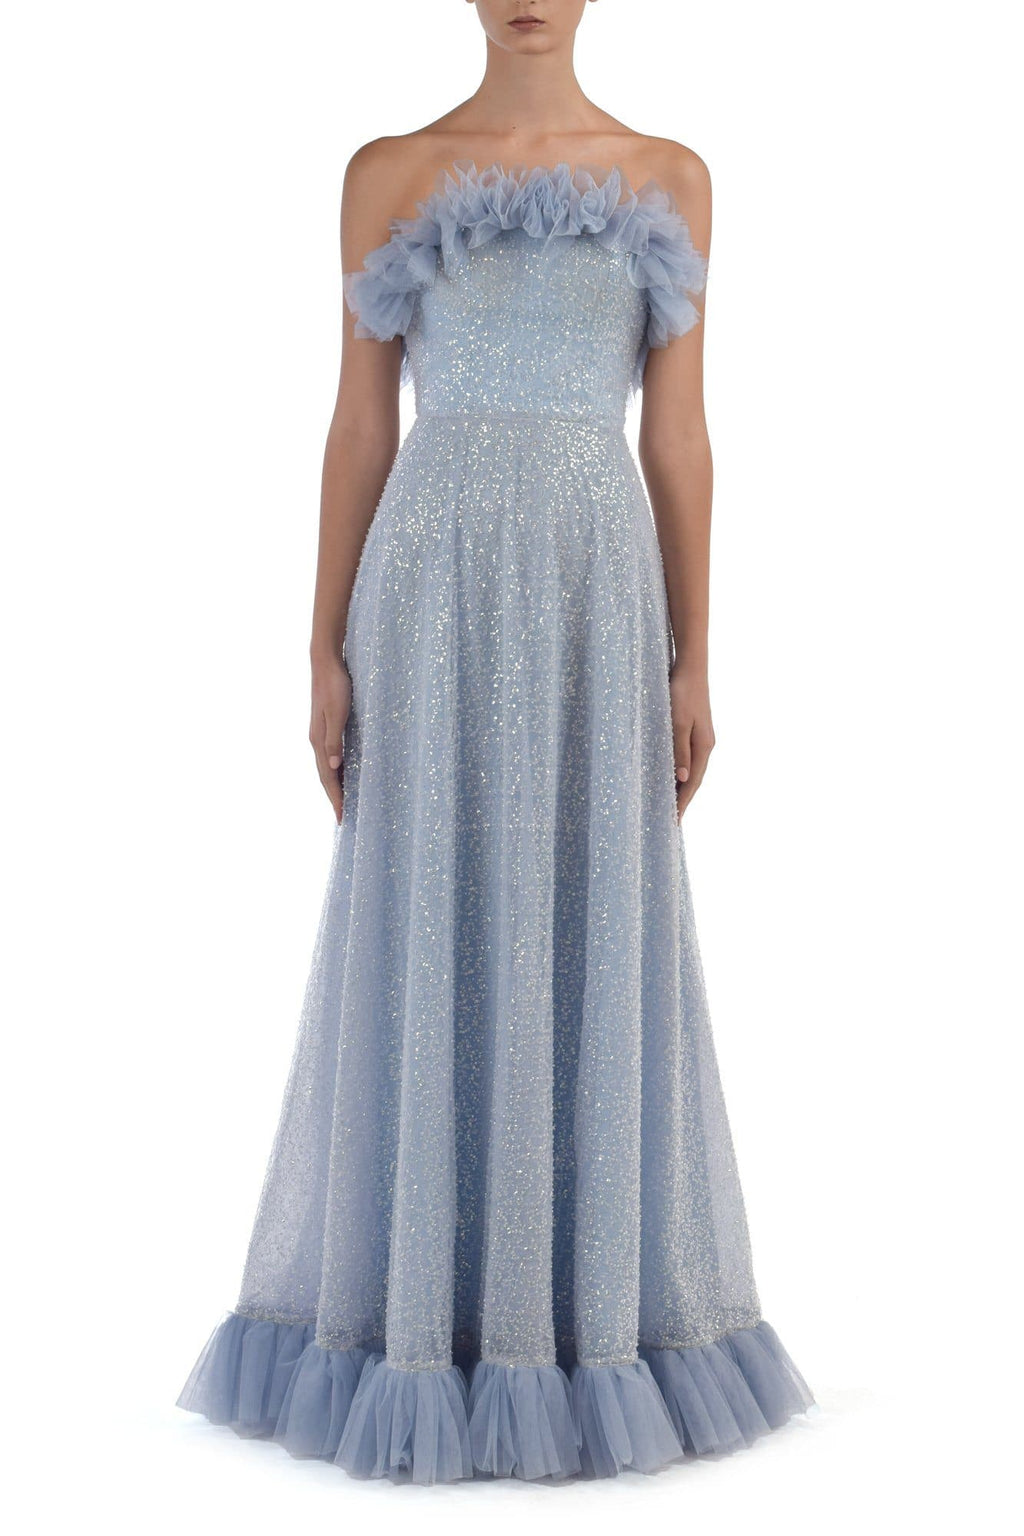 Nakia Beaded Lace In Powder Blue With Ruffles Around The Chest & Hem - BYTRIBUTE